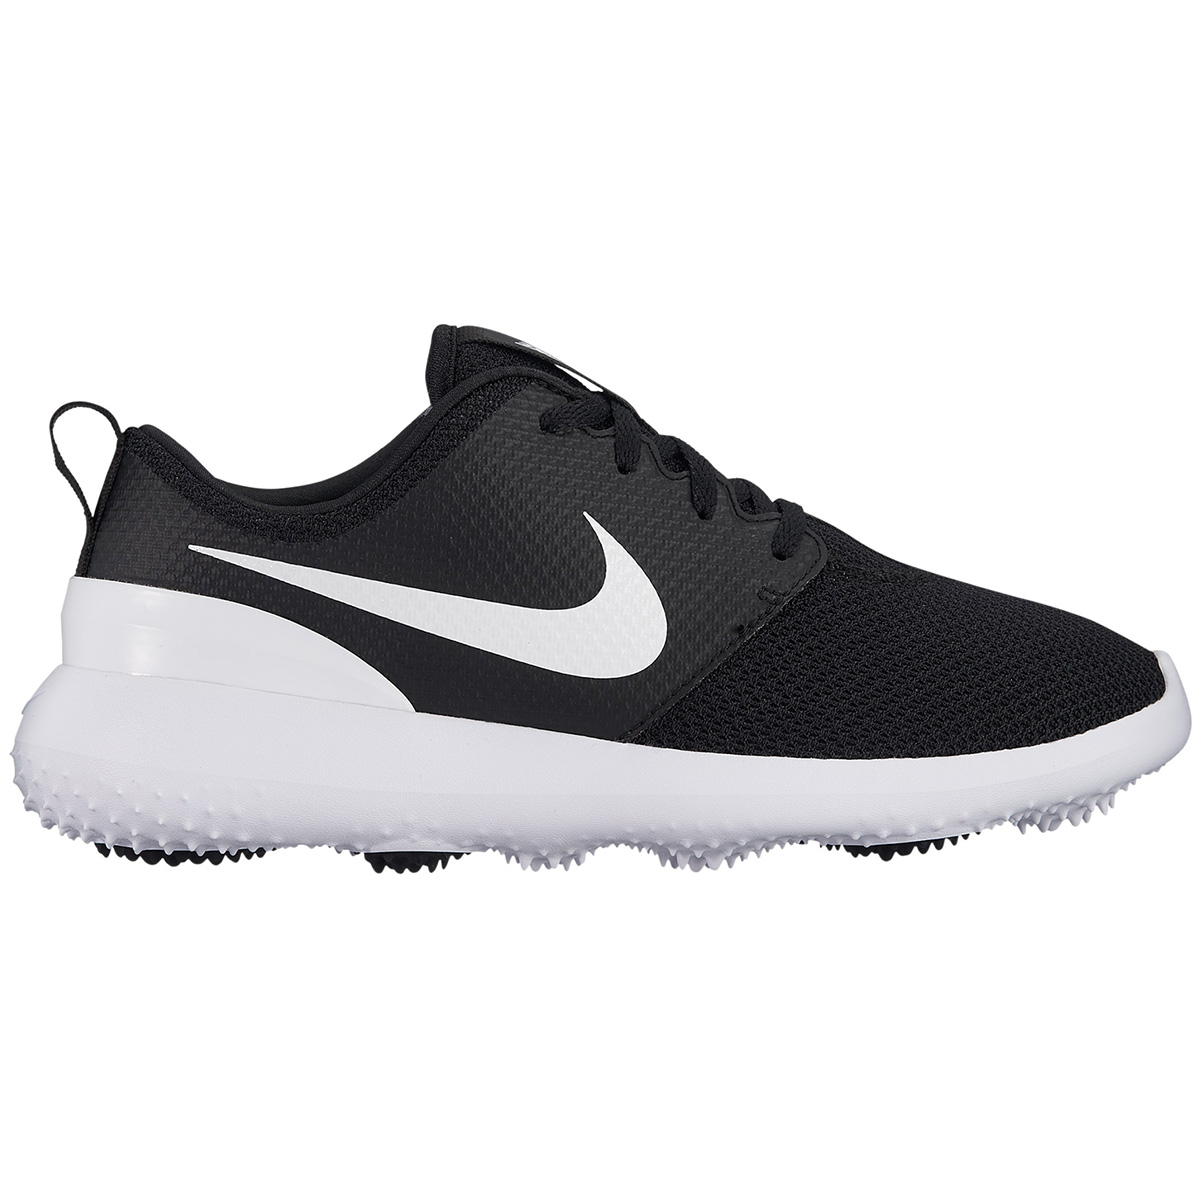 Nike Golf Shoes Square Toe